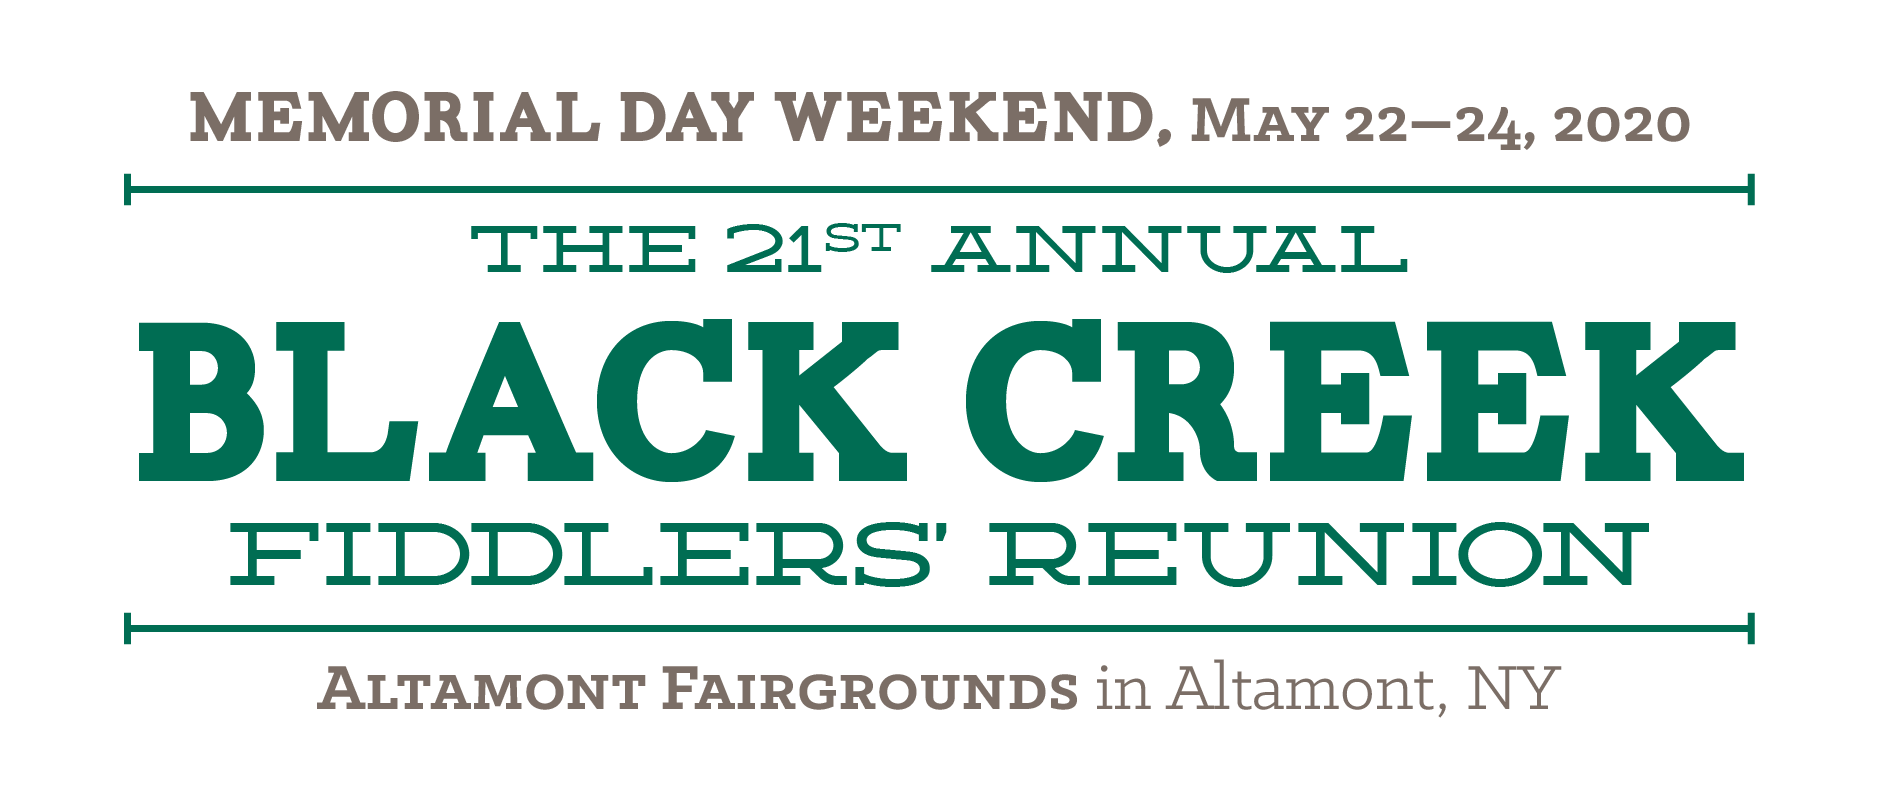 Black Creek Fiddlers' Reunion